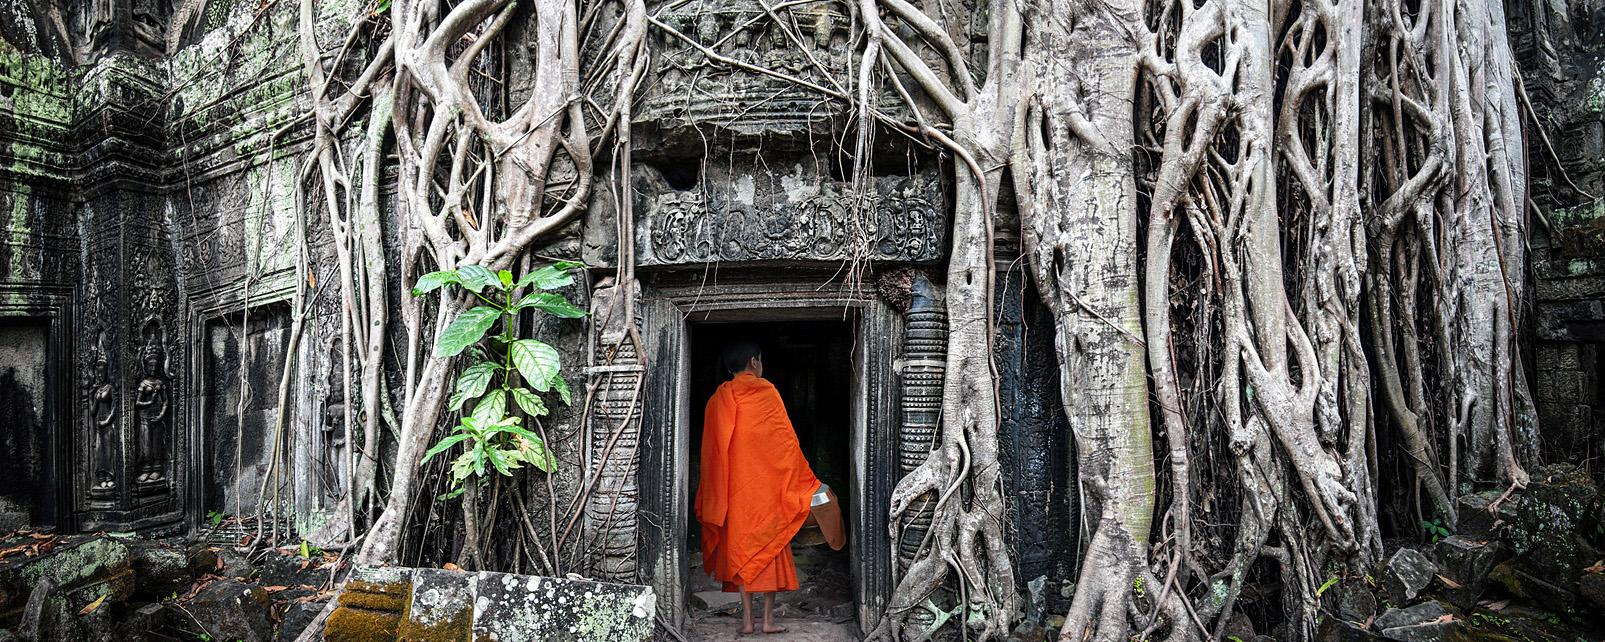 Asie, Cambodge, Angkor Wat, temple, Ta Prohm Khmer, moine, bouddhiste, forêt, jungle,